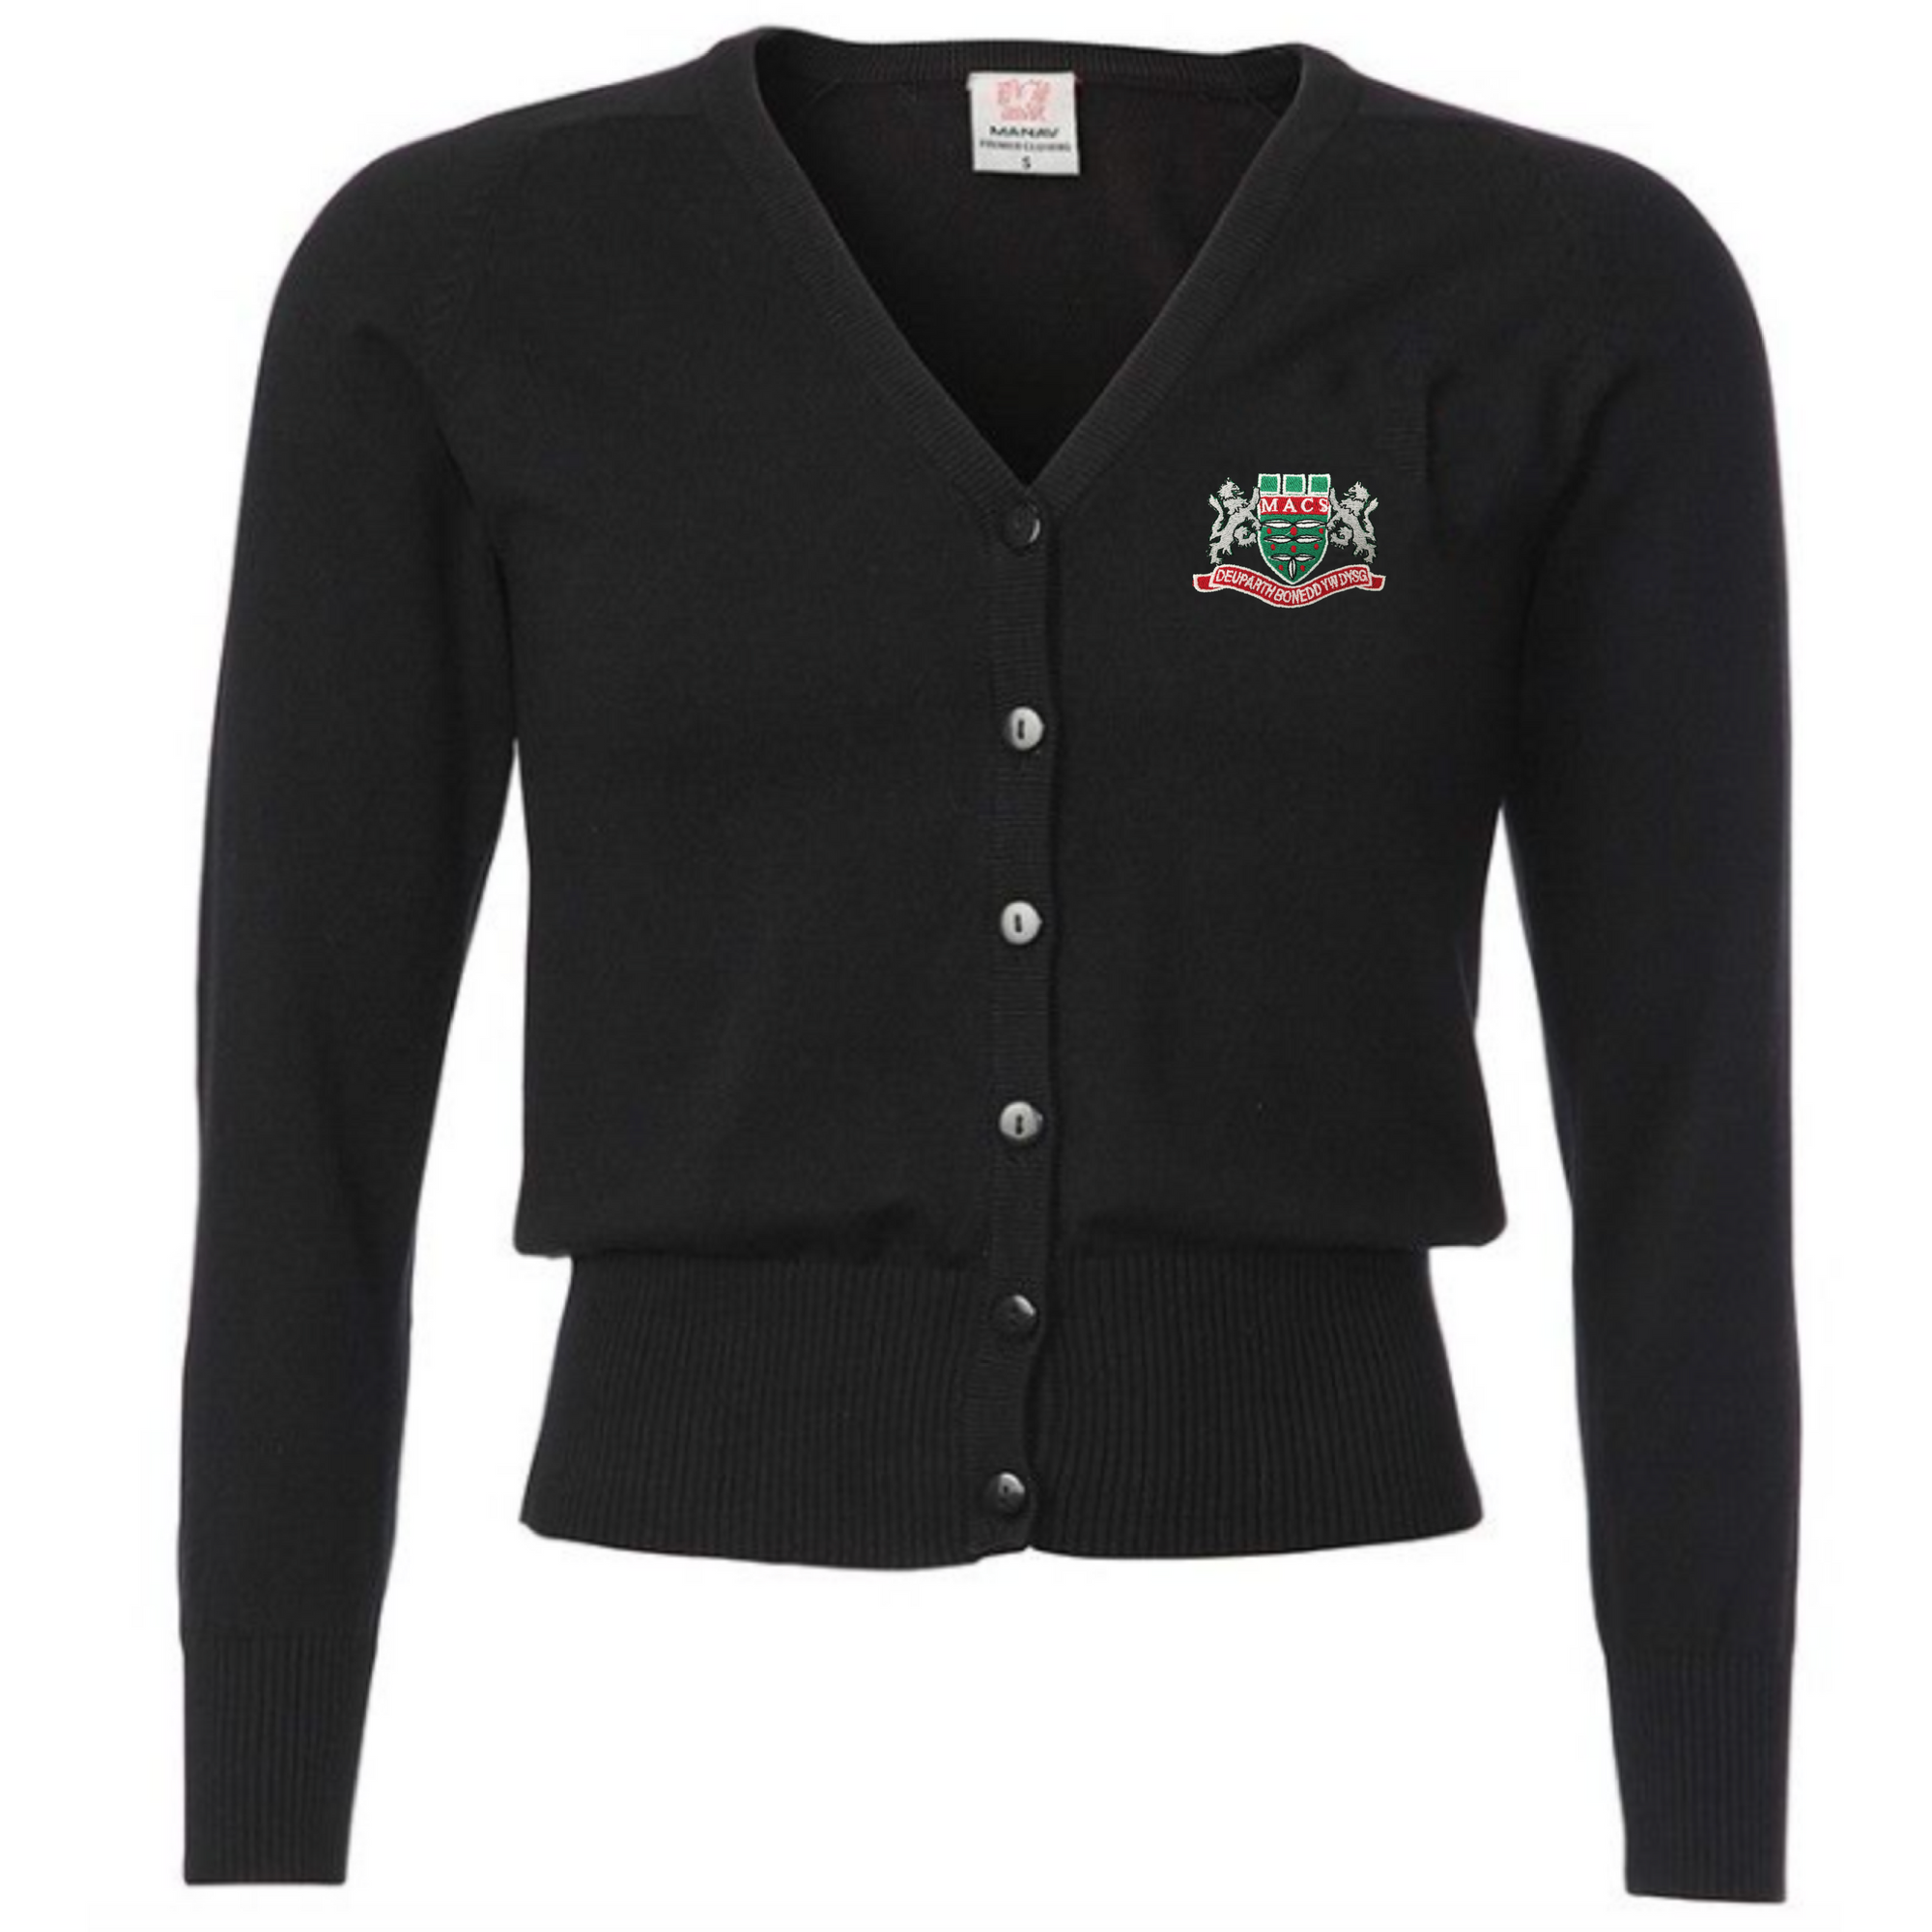 Mountain Ash Comprehensive School Black Cardigan